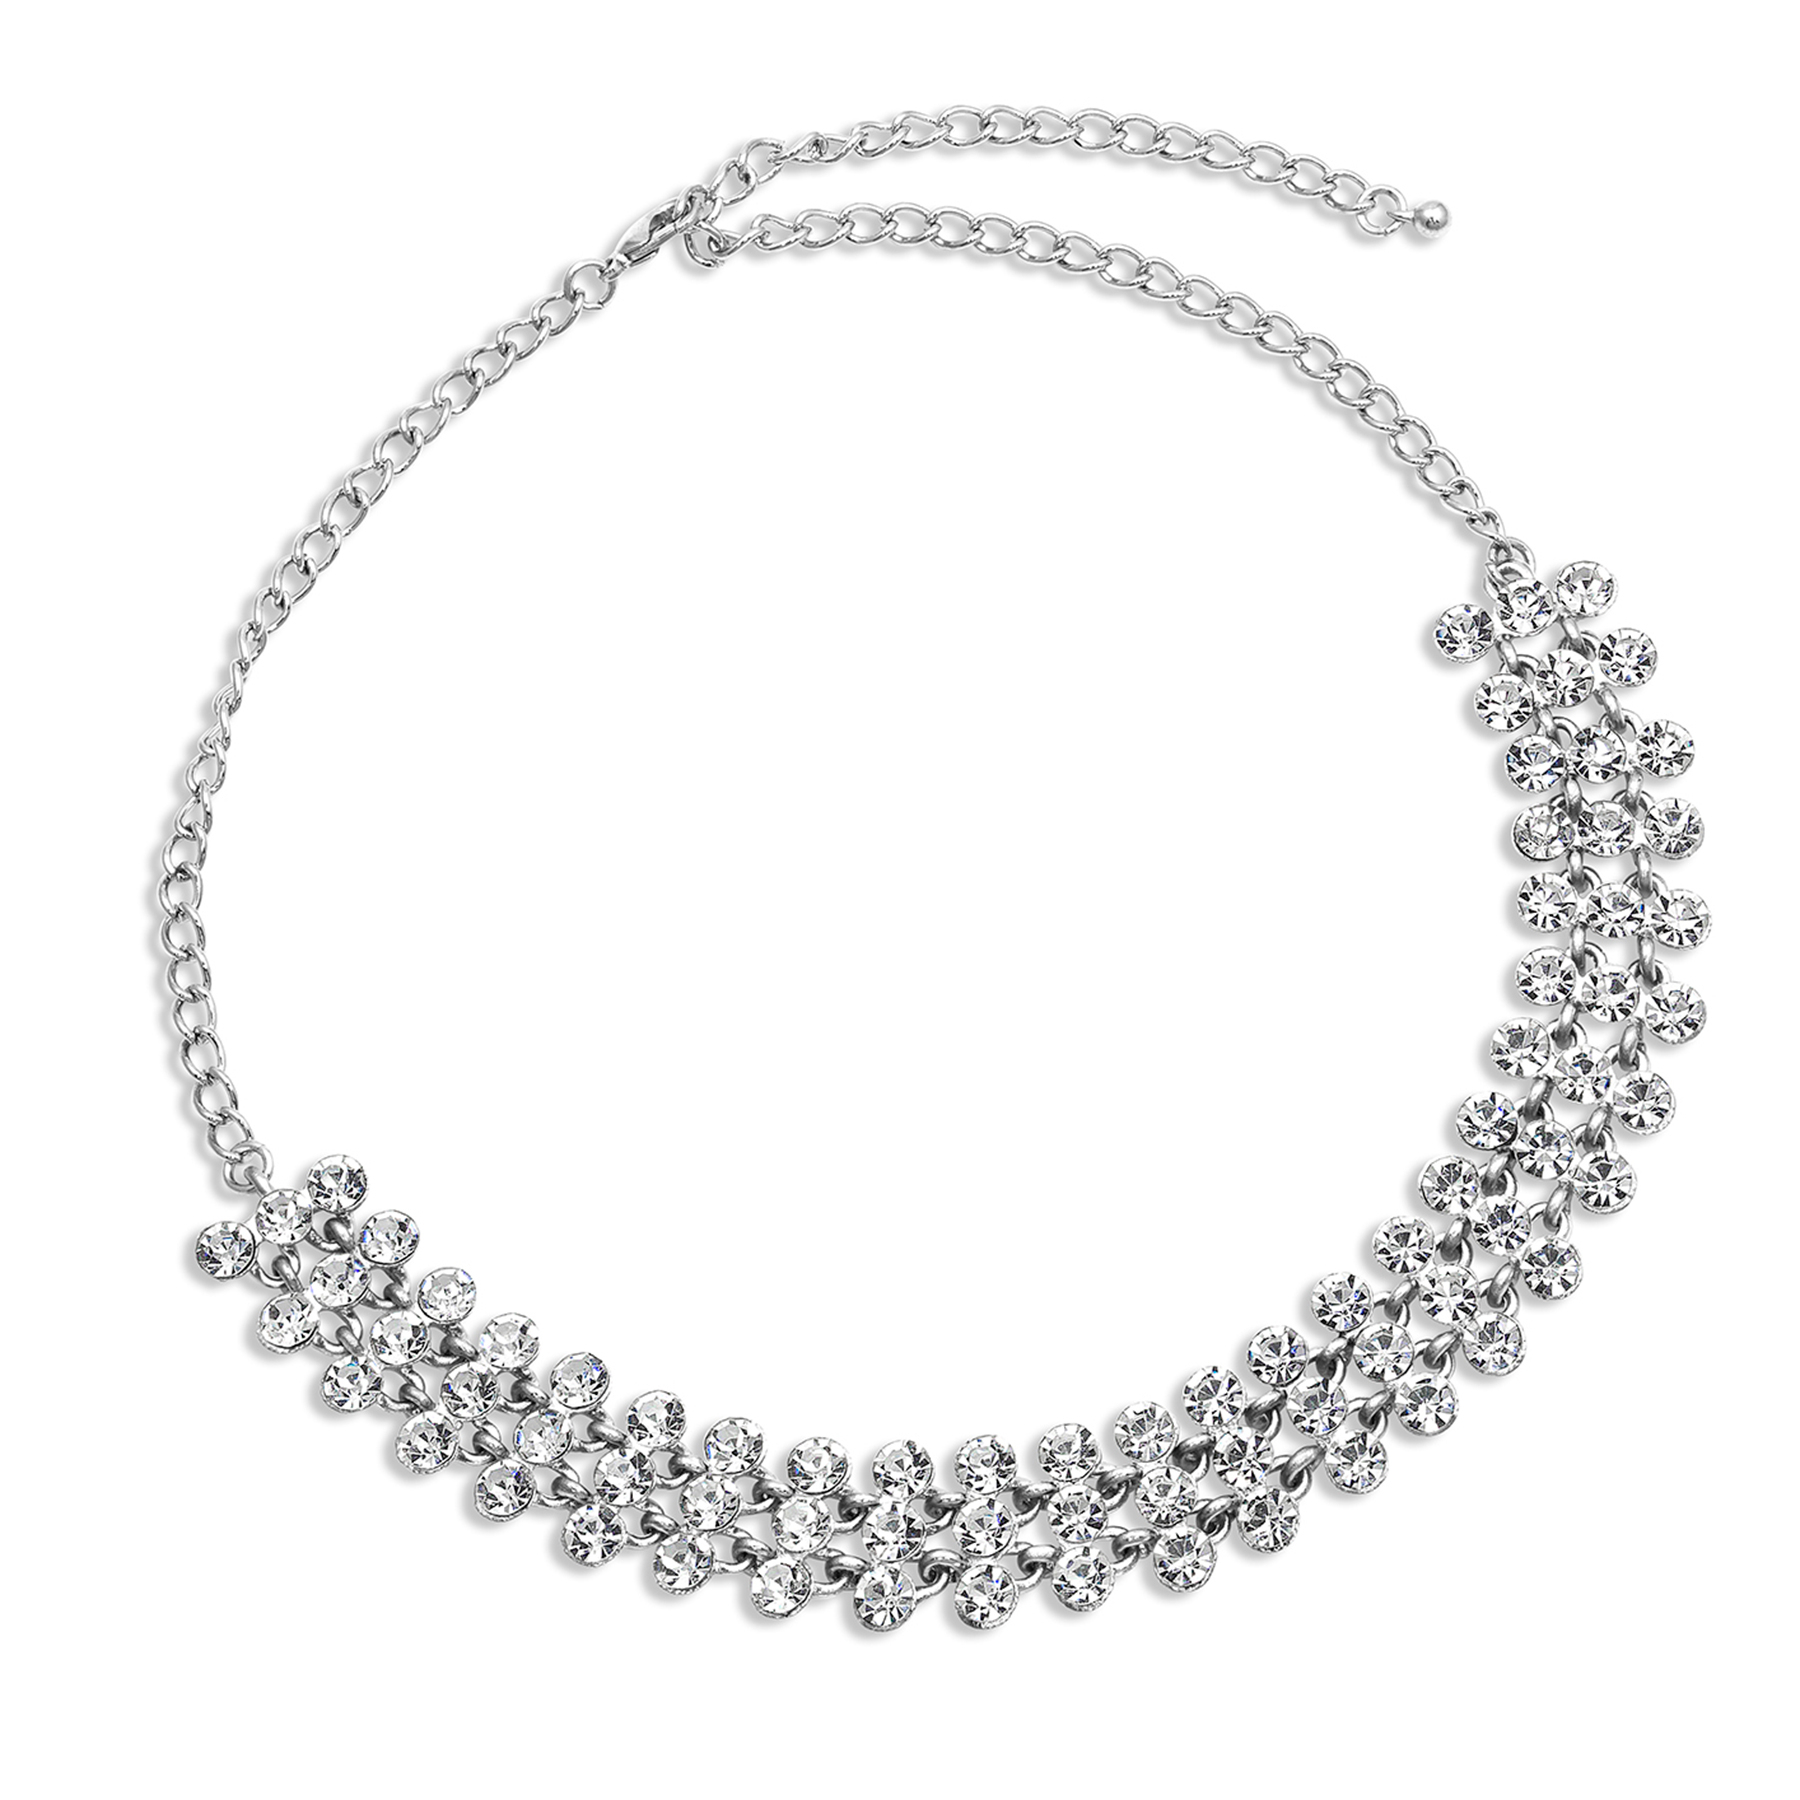 Search Results For: 'silver Necklace Slider Chokers For Women Pertaining To Current Woven Fabric Choker Slider Necklaces (View 21 of 25)